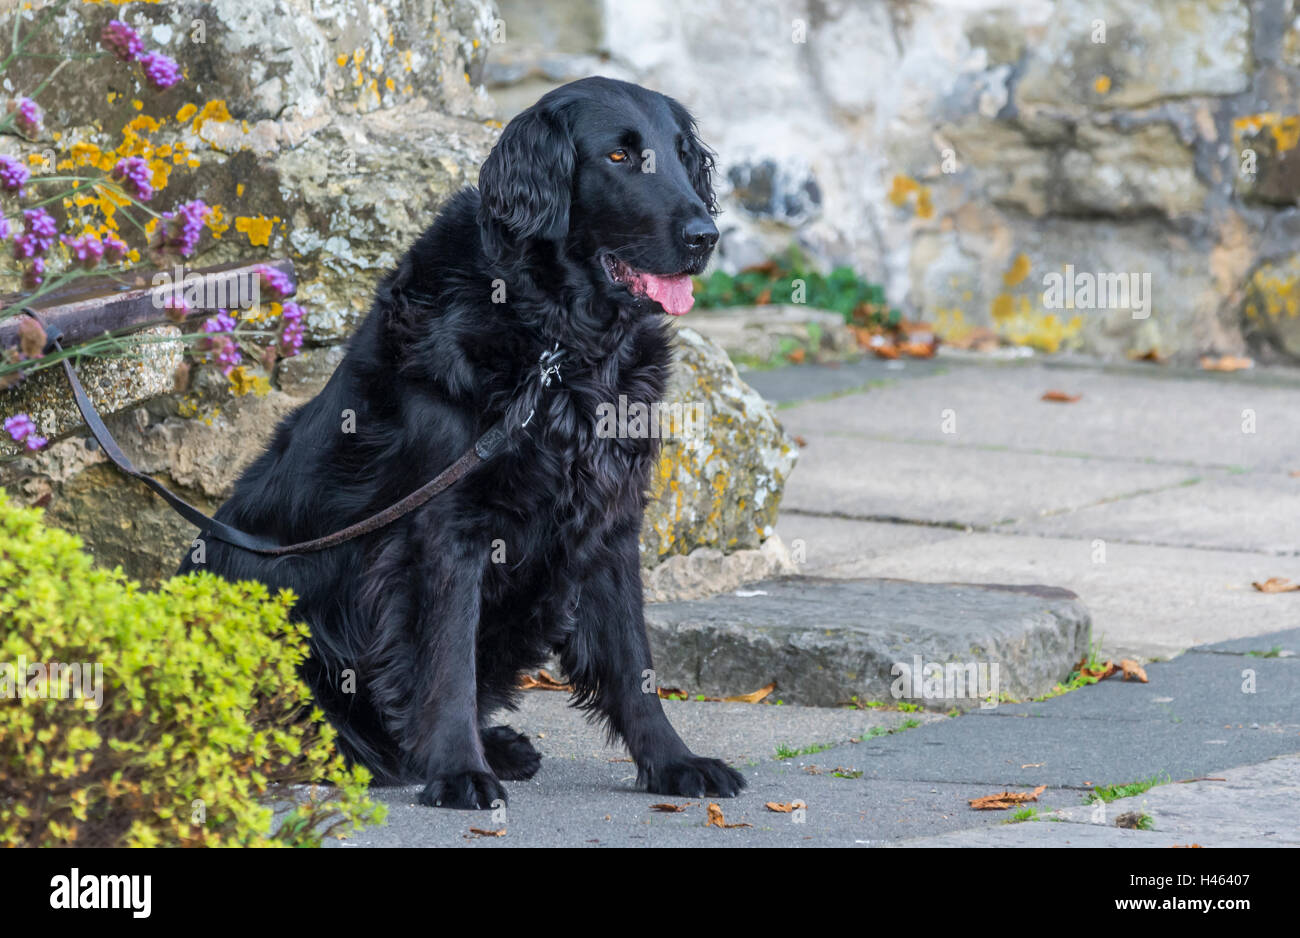 Black Retriever dog tied up sitting on the ground. - Stock Image